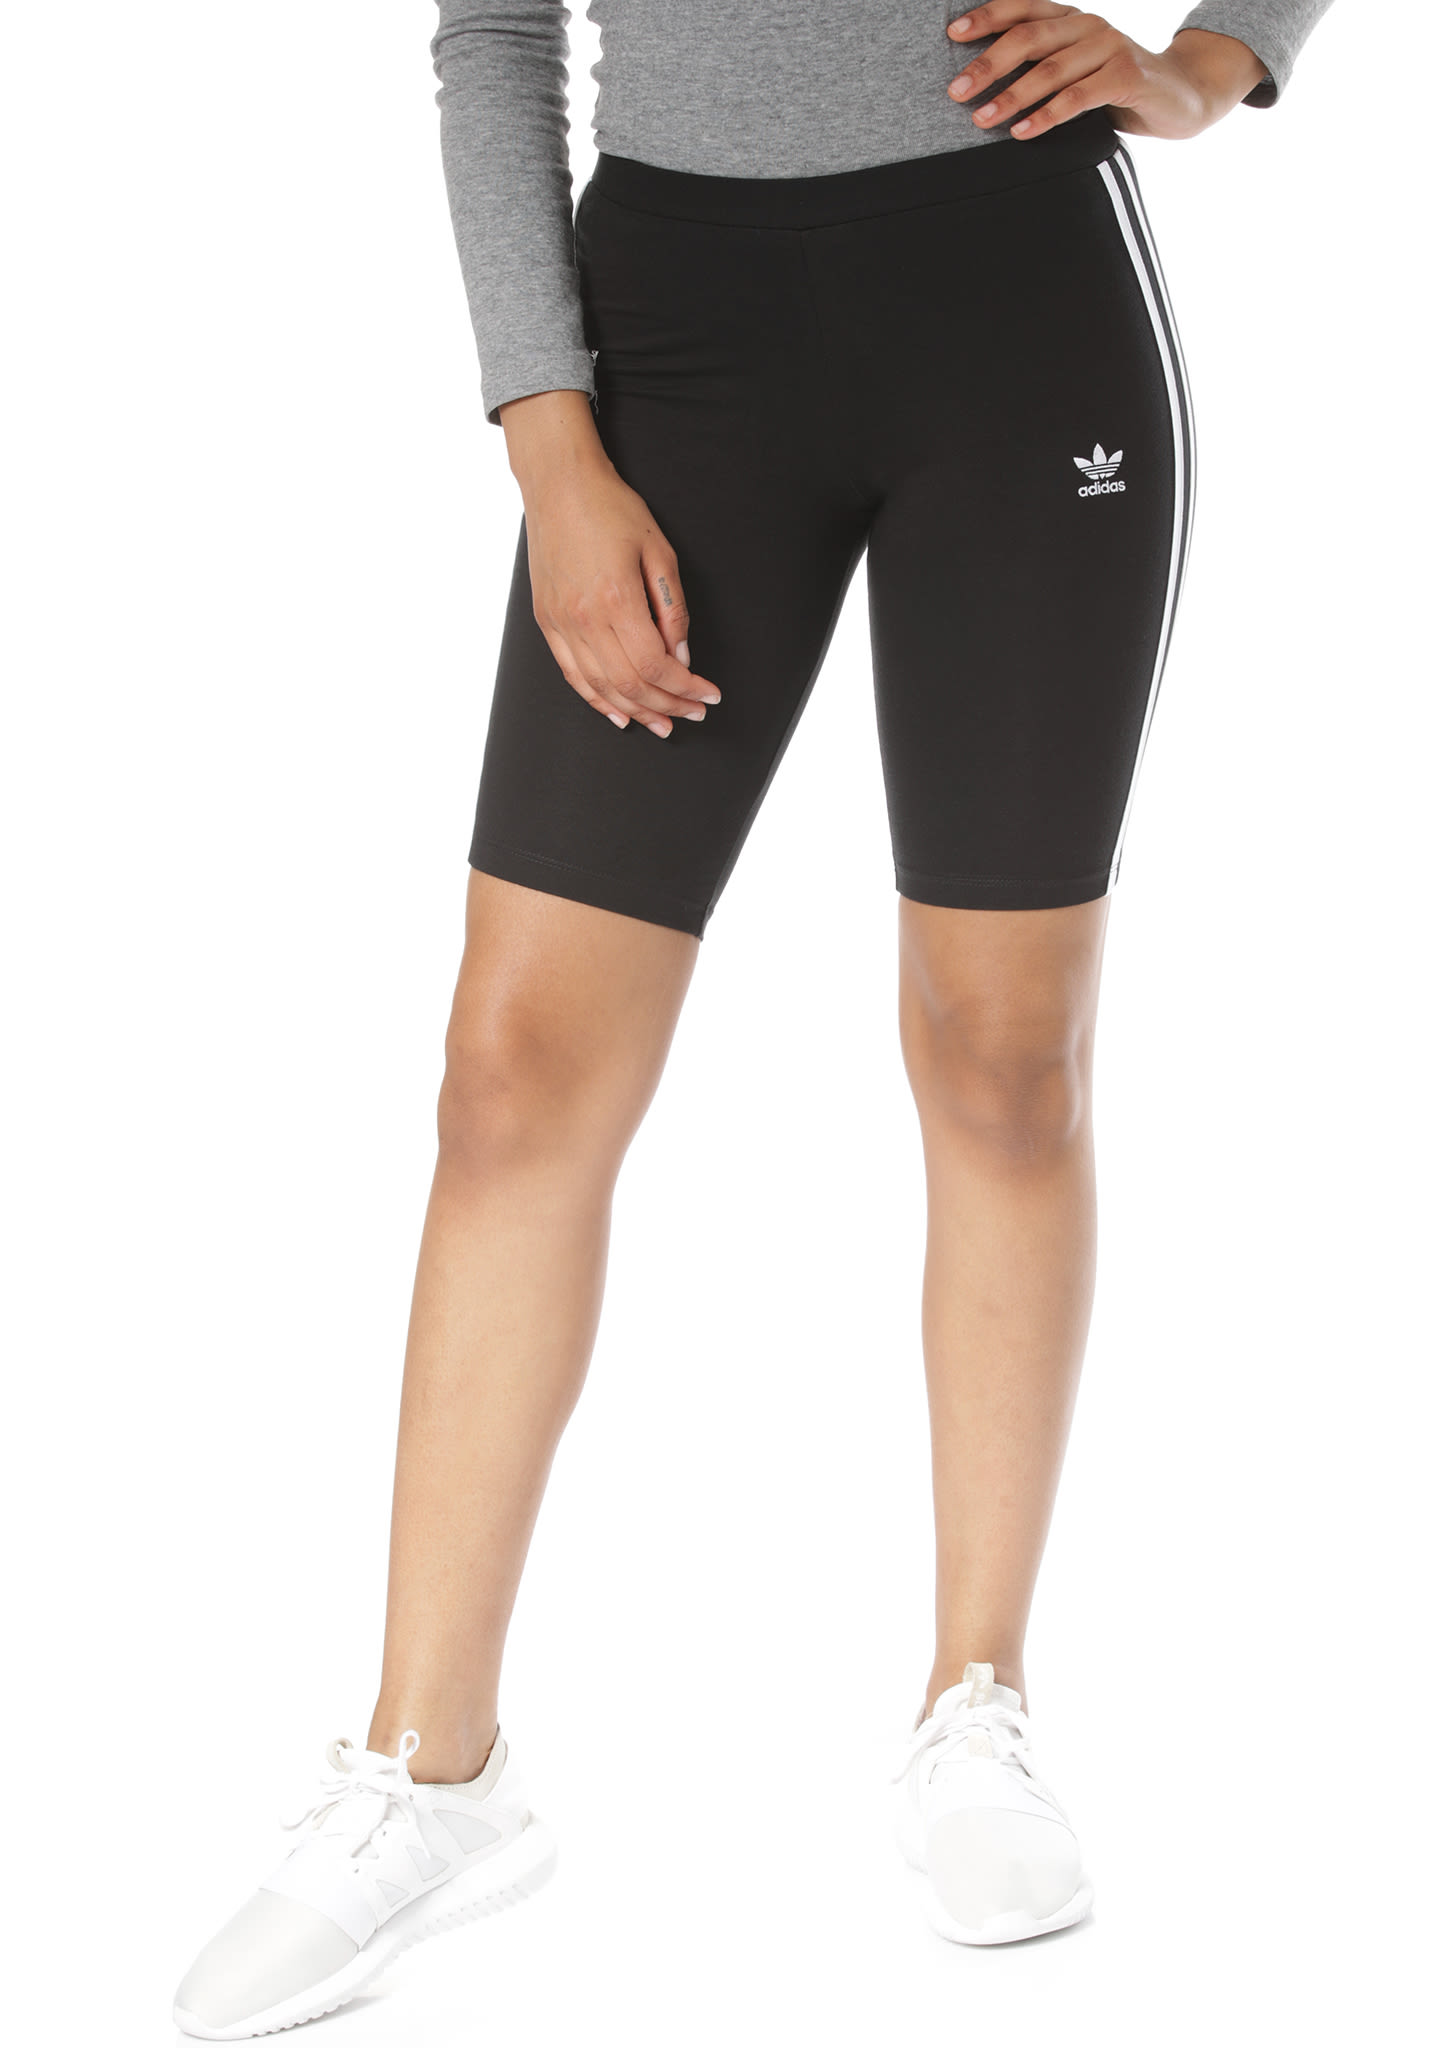 adidas Originals Cycling Shorts für Damen Schwarz